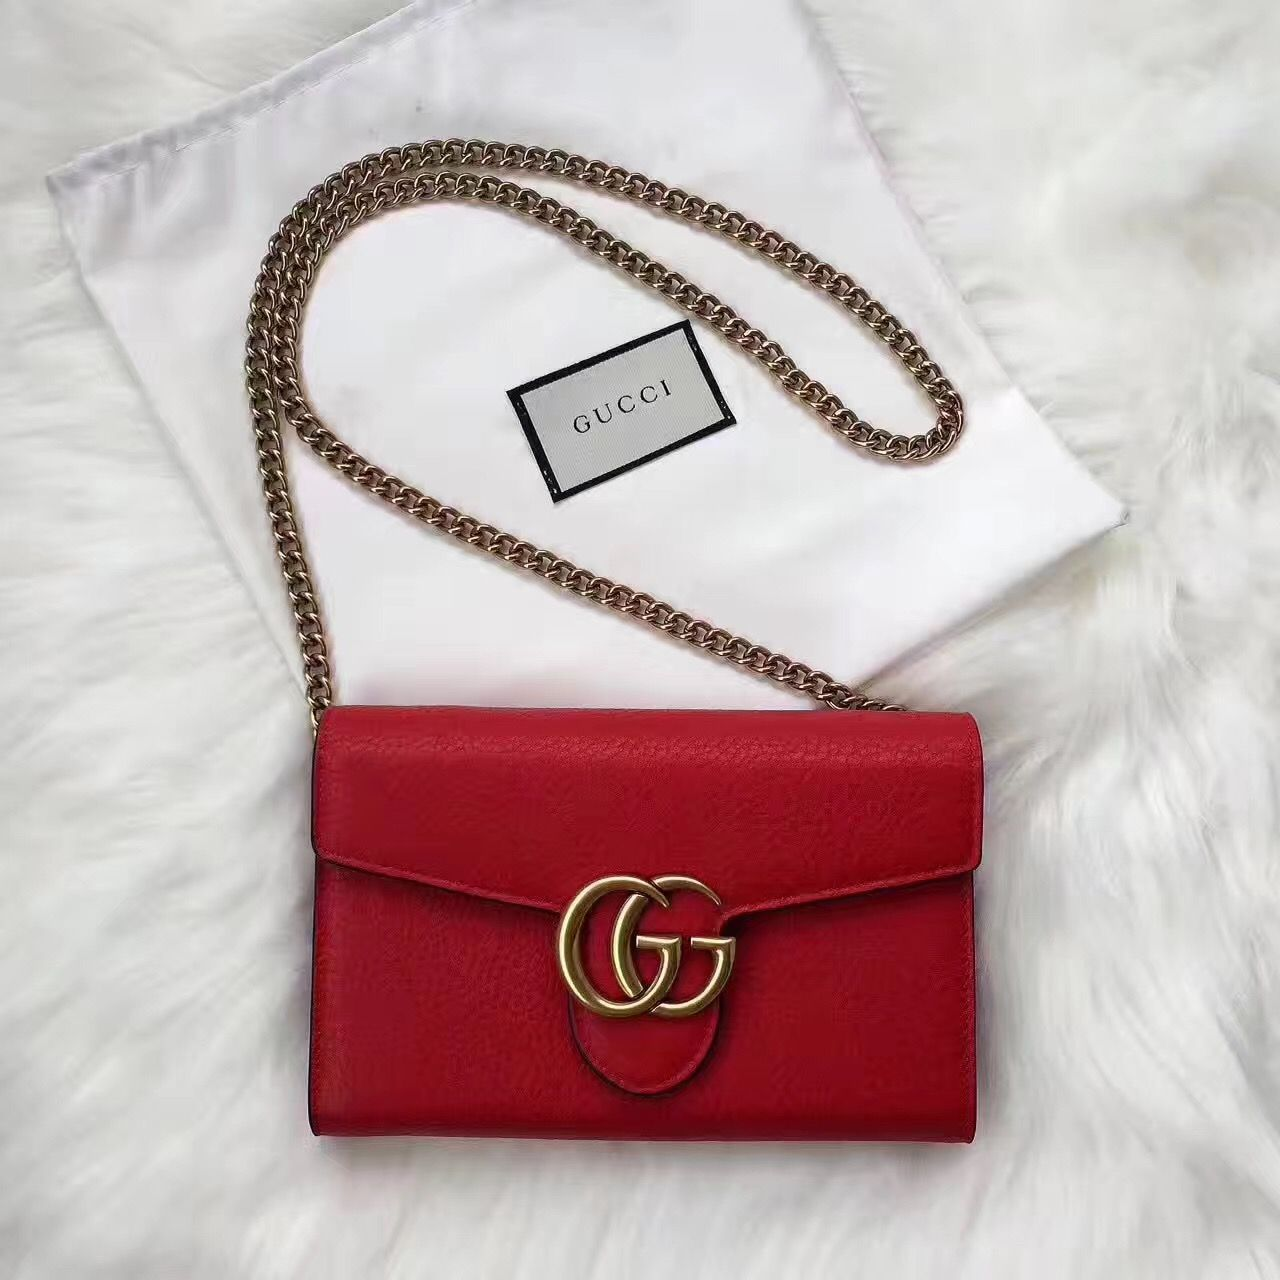 Gucci Purse Classic But Trendy Handbags And Purses Gucci Bag Bags Gucci Purses